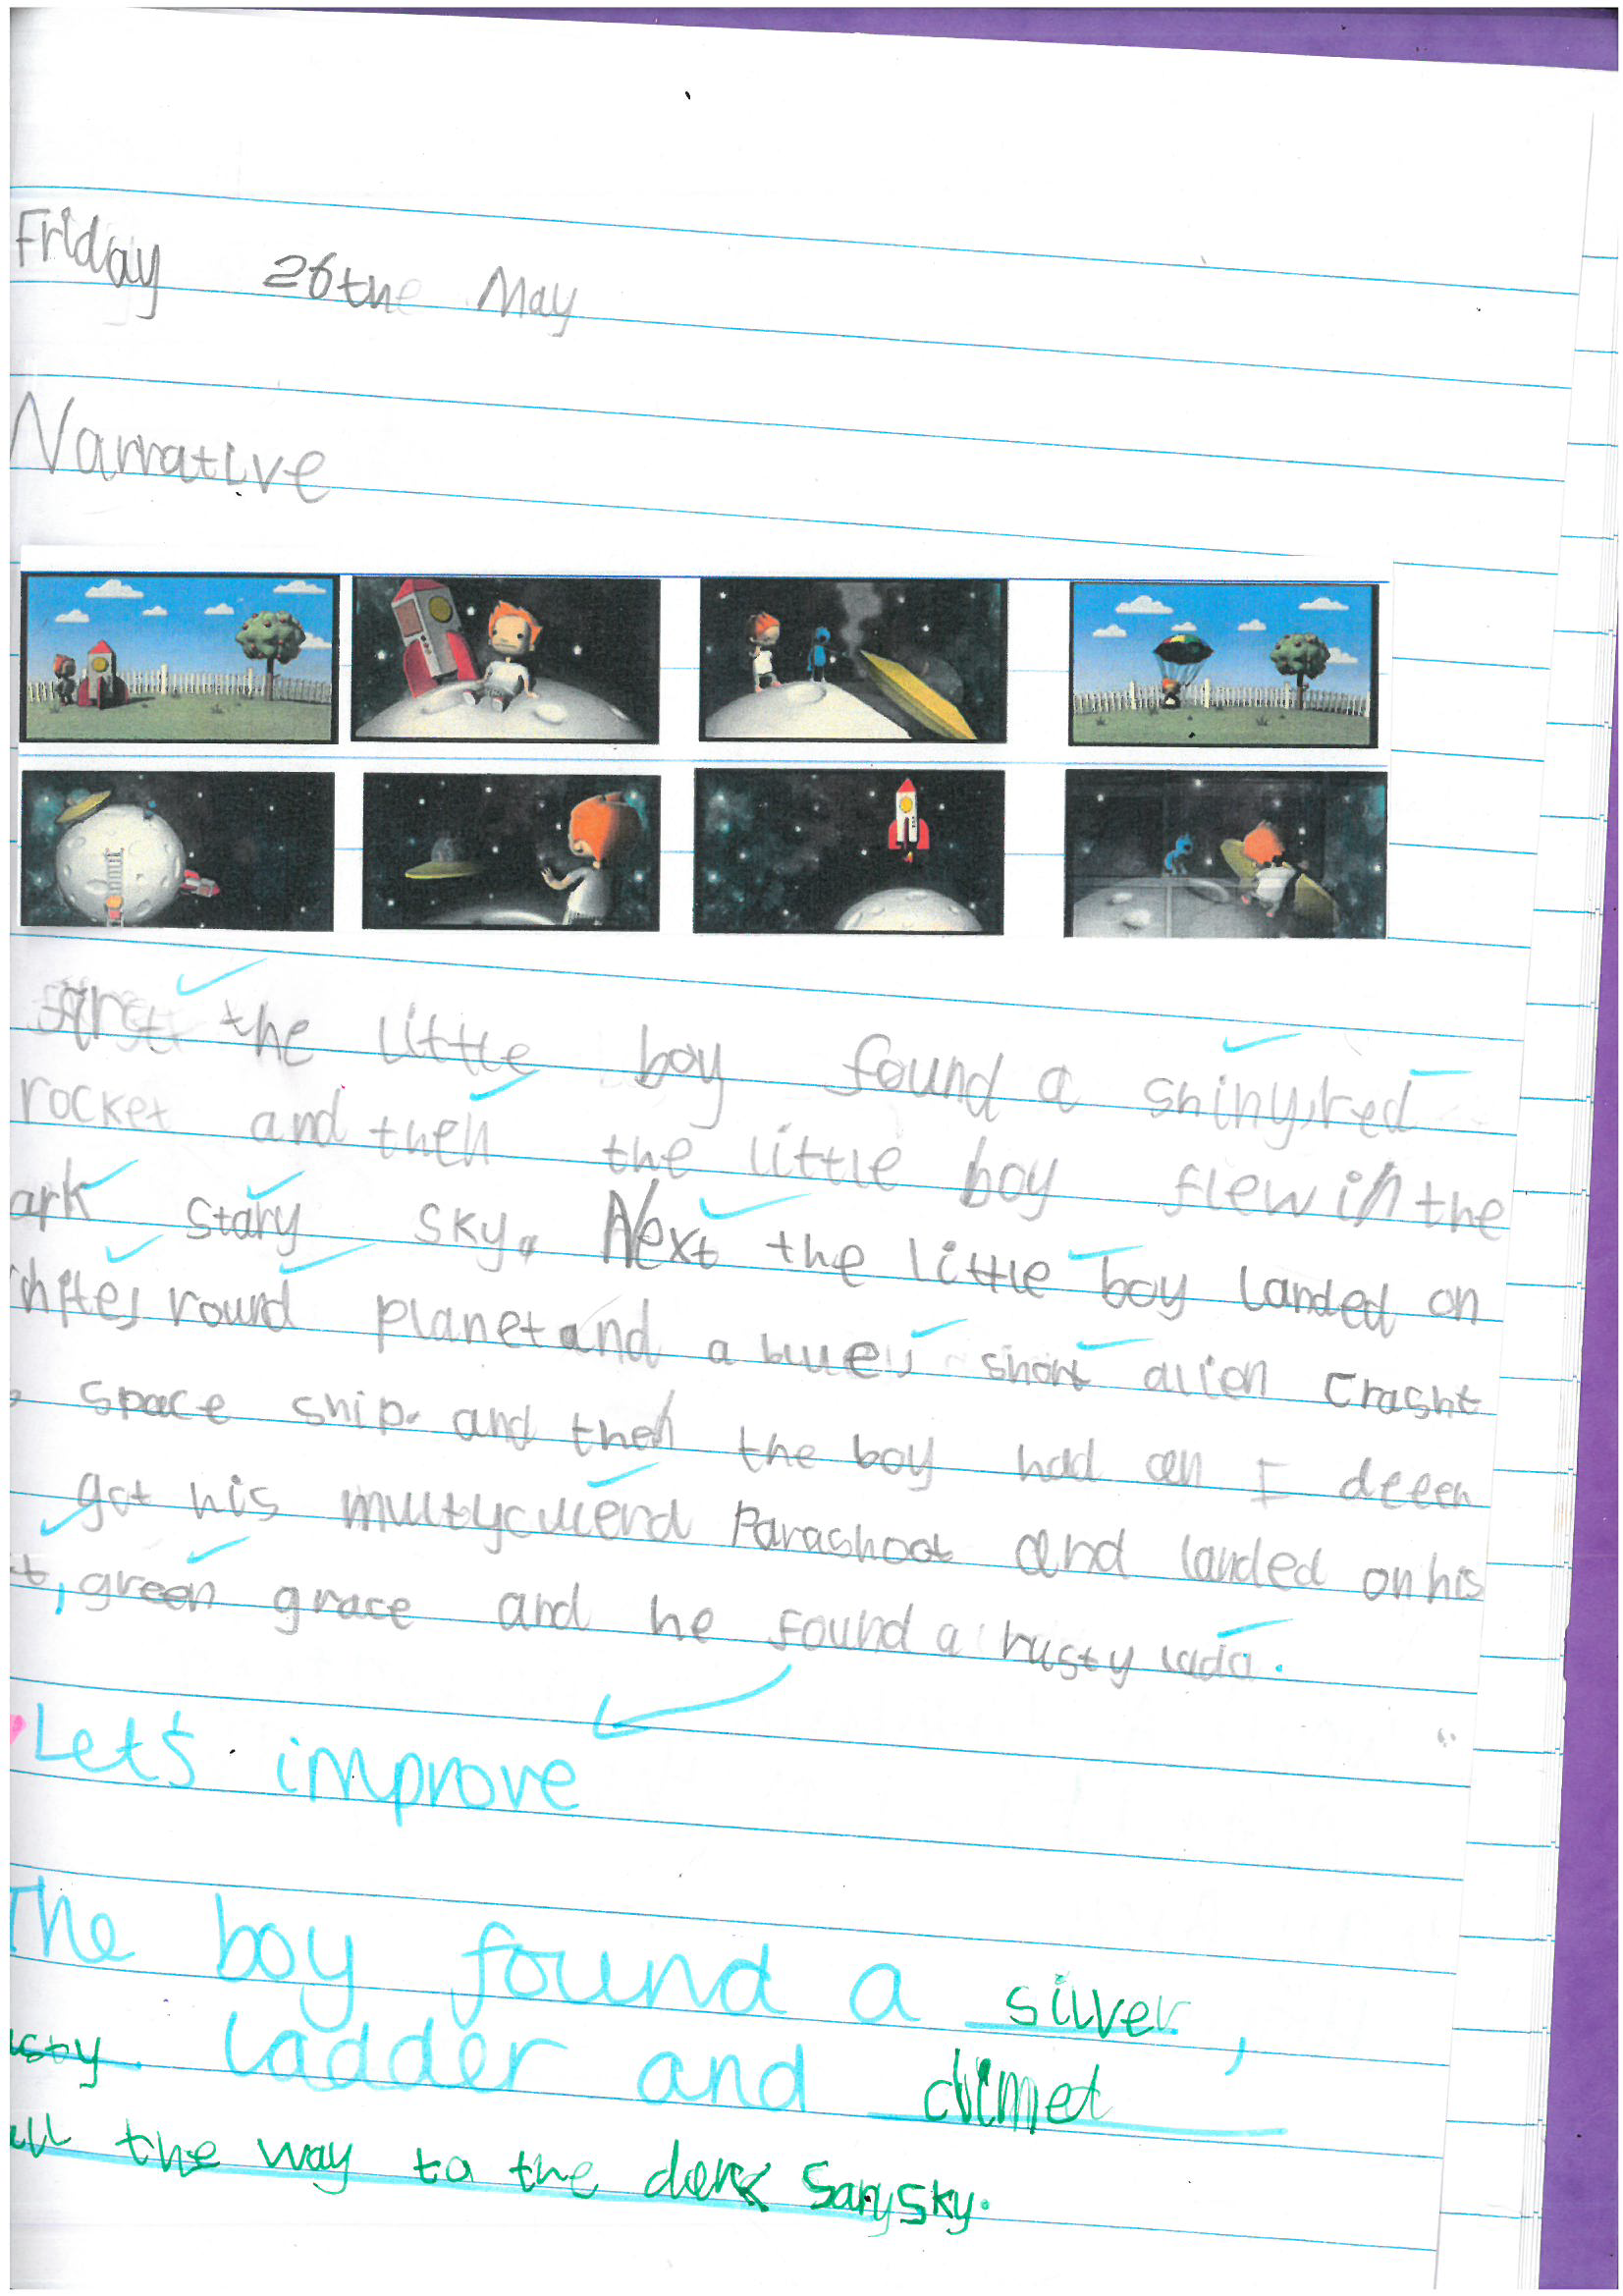 Year 1 Maeel - narrative from the Long way home